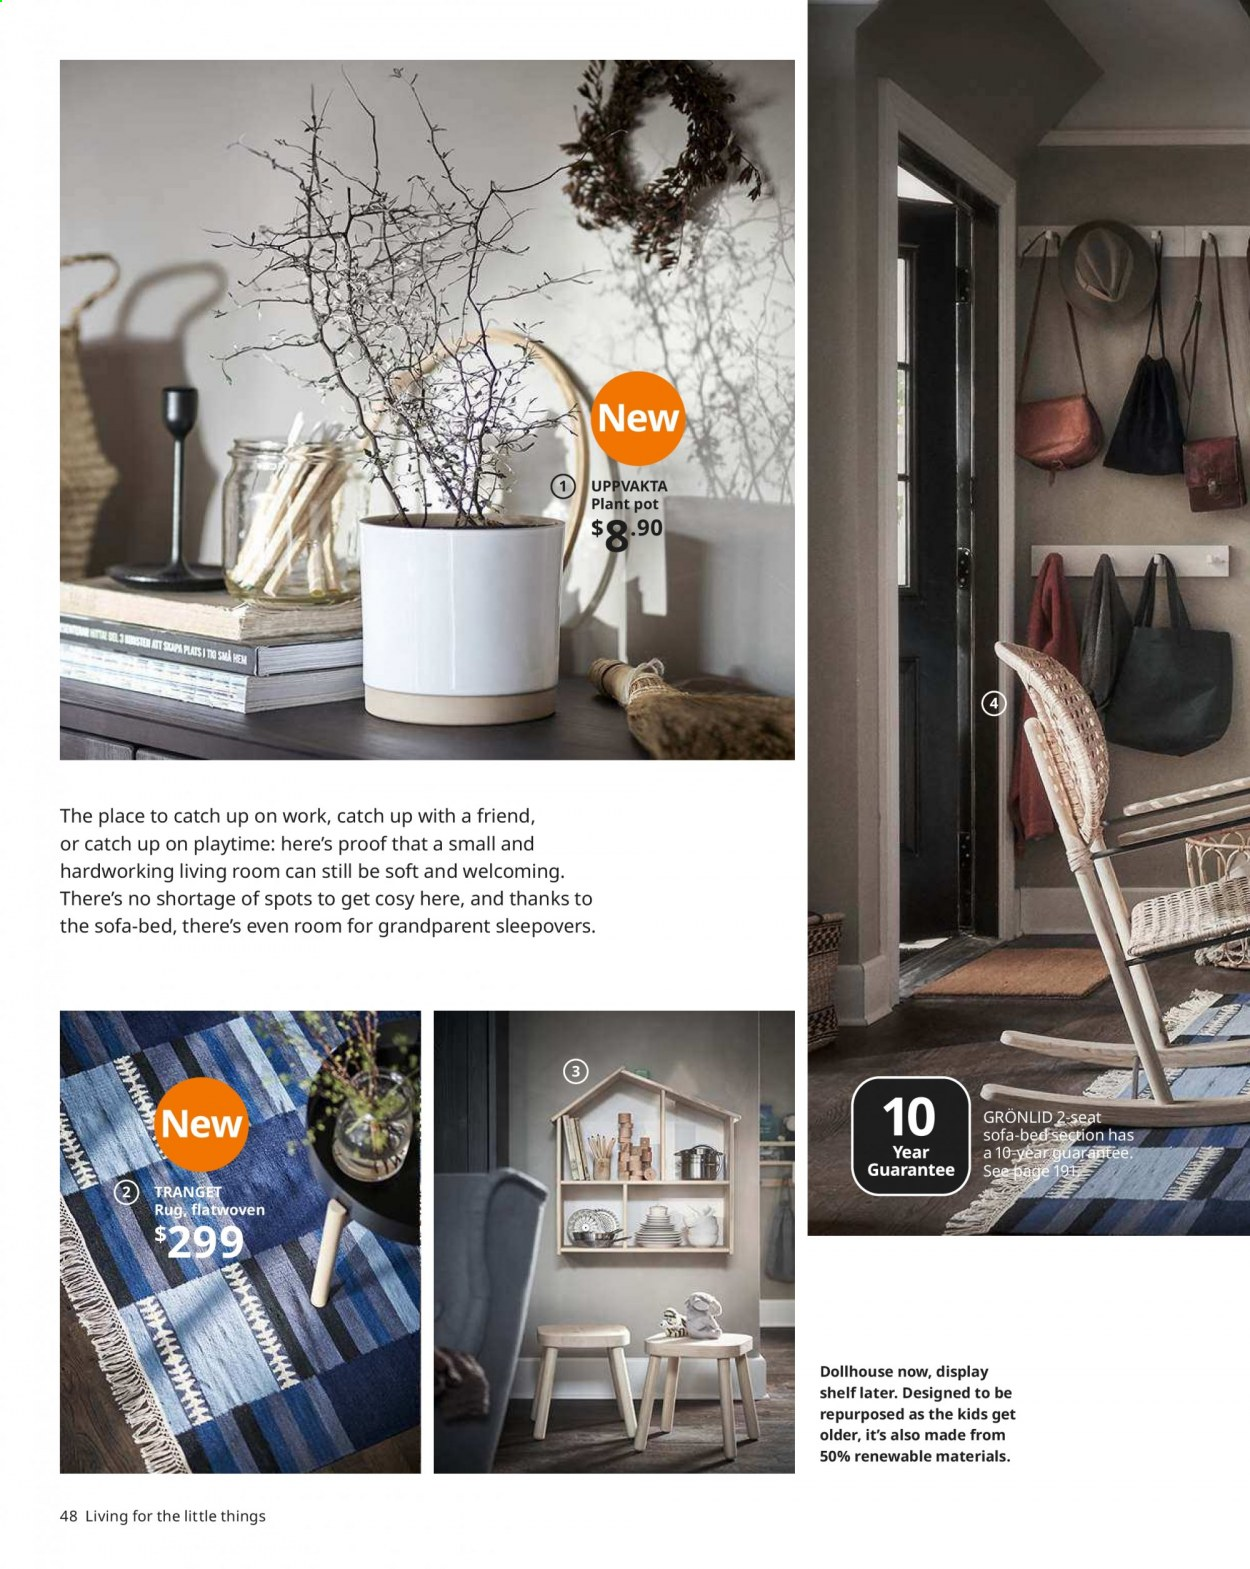 IKEA offer  - Sales products - arm chair, bed, coffee table, doll, lamp, reading lamp, rug, sofa, table, wall shelf, hook, chair, plant pot, pot, powder. Page 48.